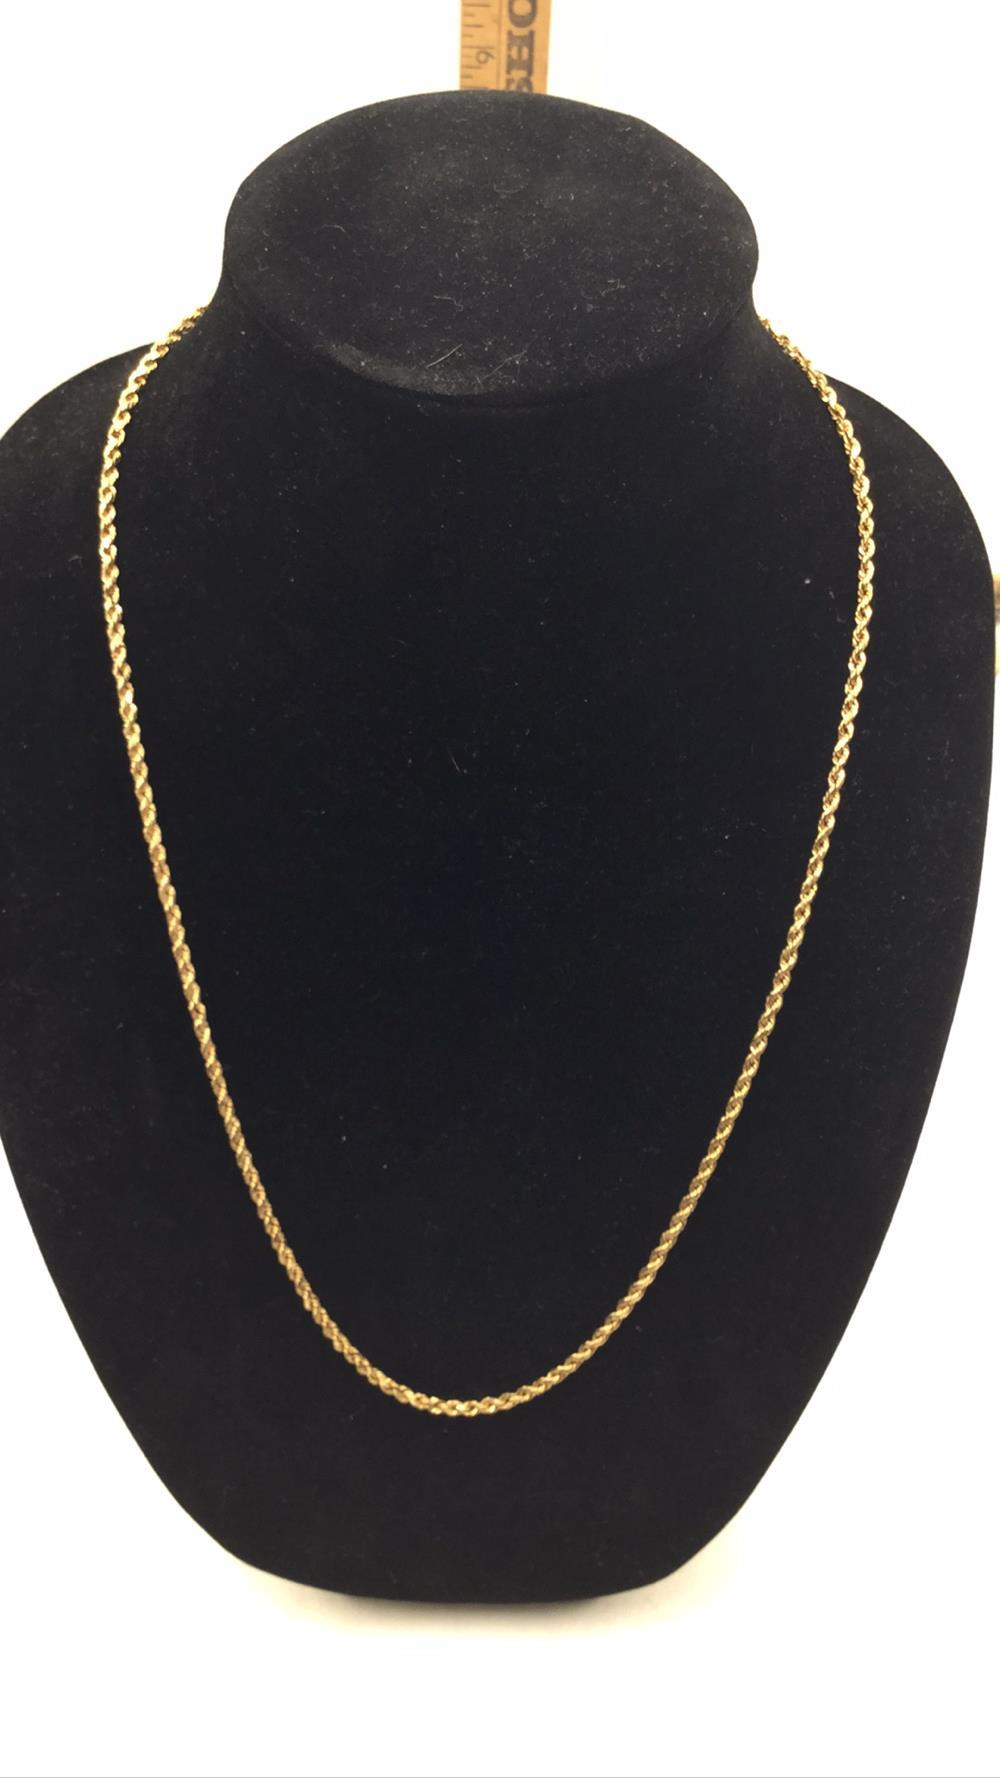 14k gold rope chain